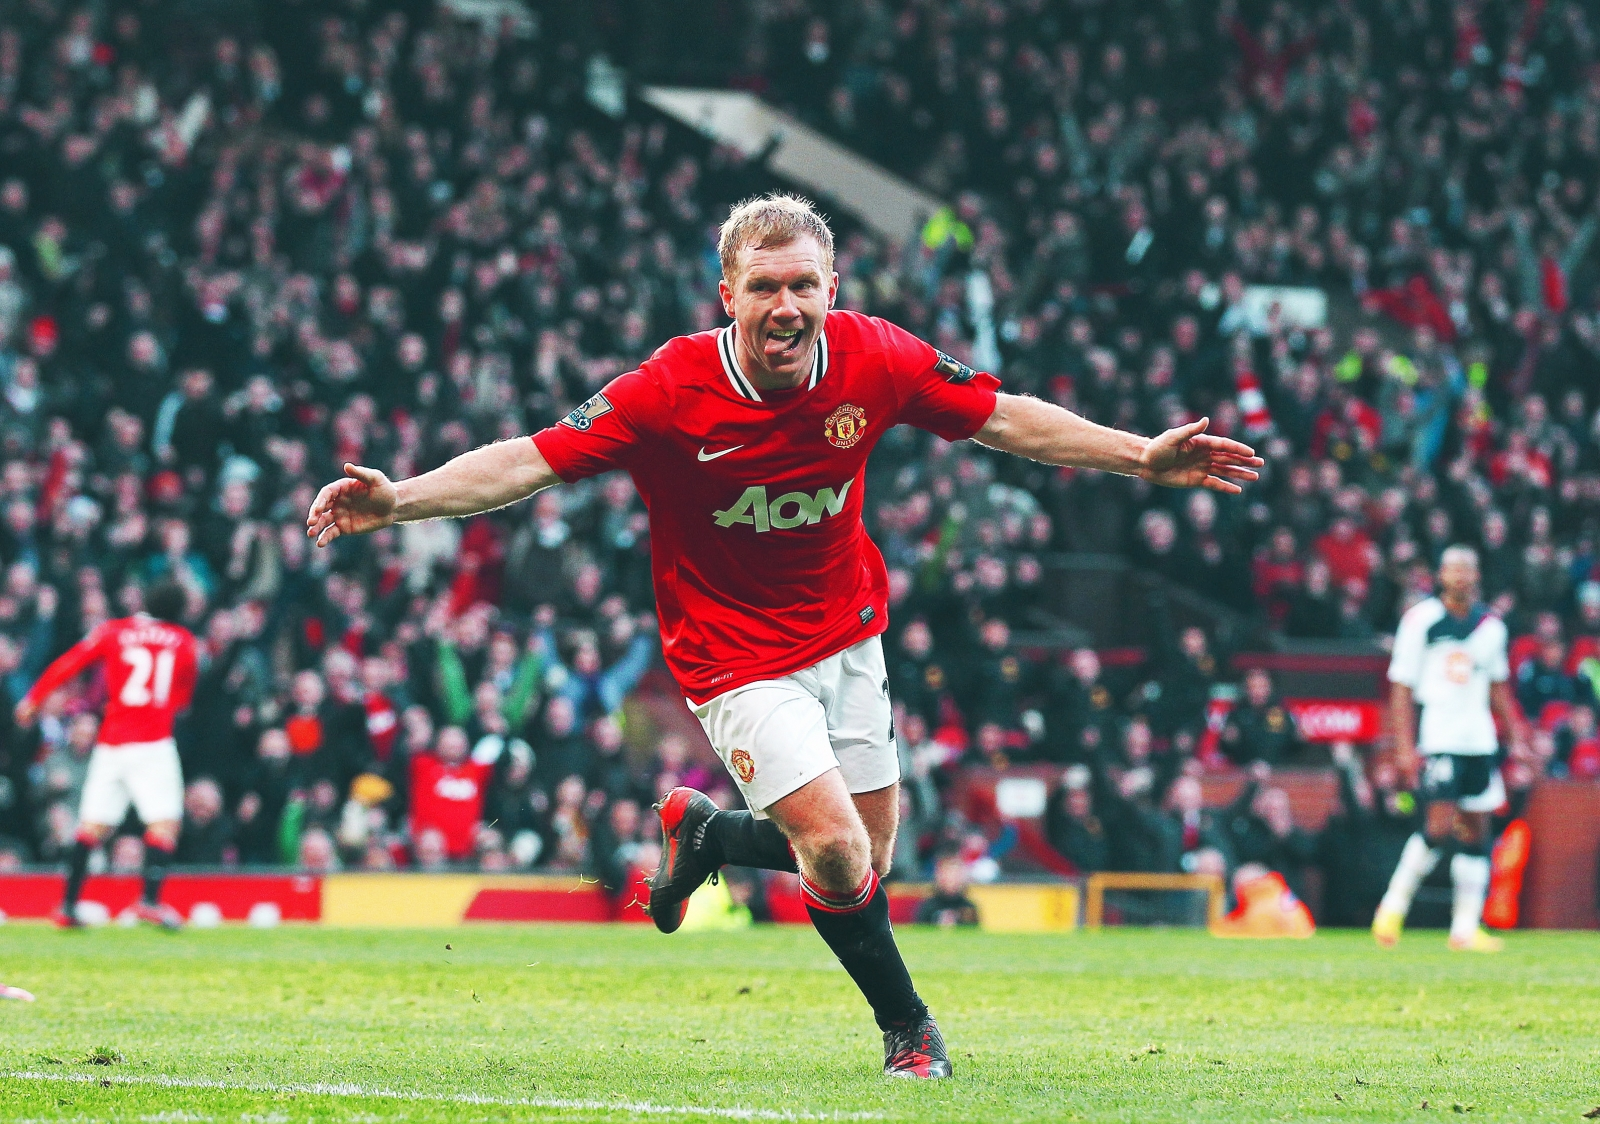 https://thesefootballtimes.co/2016/02/20/in-celebration-of-paul-scholes-the-undervalued-prince-of-english-football/